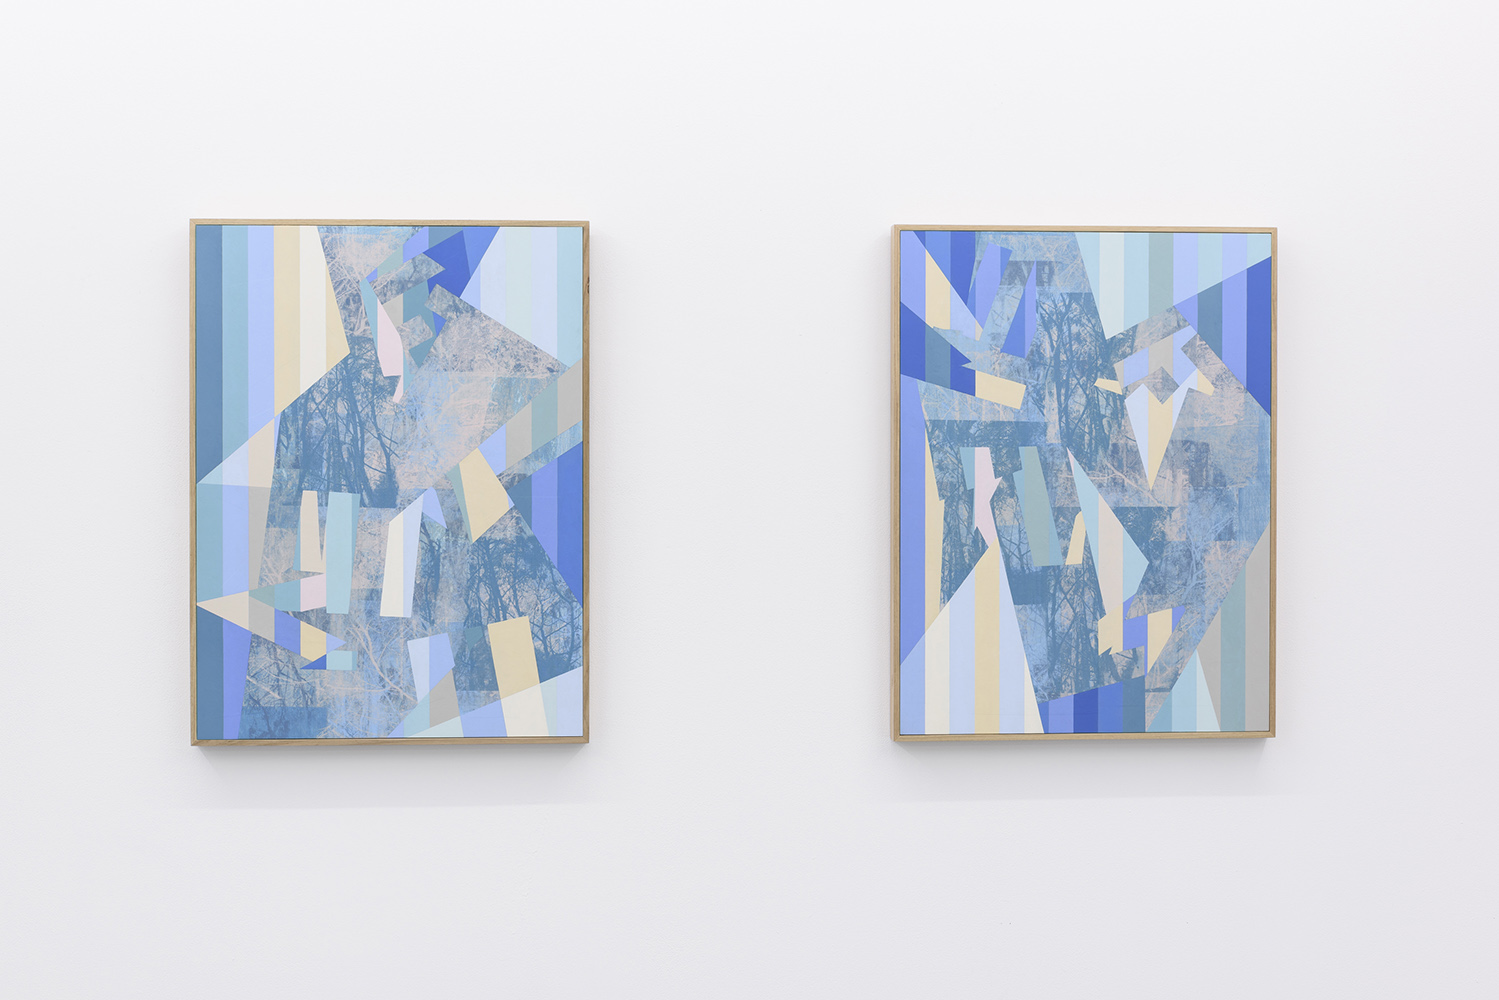 Installation: A part and between, Five Walls<br>Winter Sun and Aurora<br>Image credit: Christopher Sanders